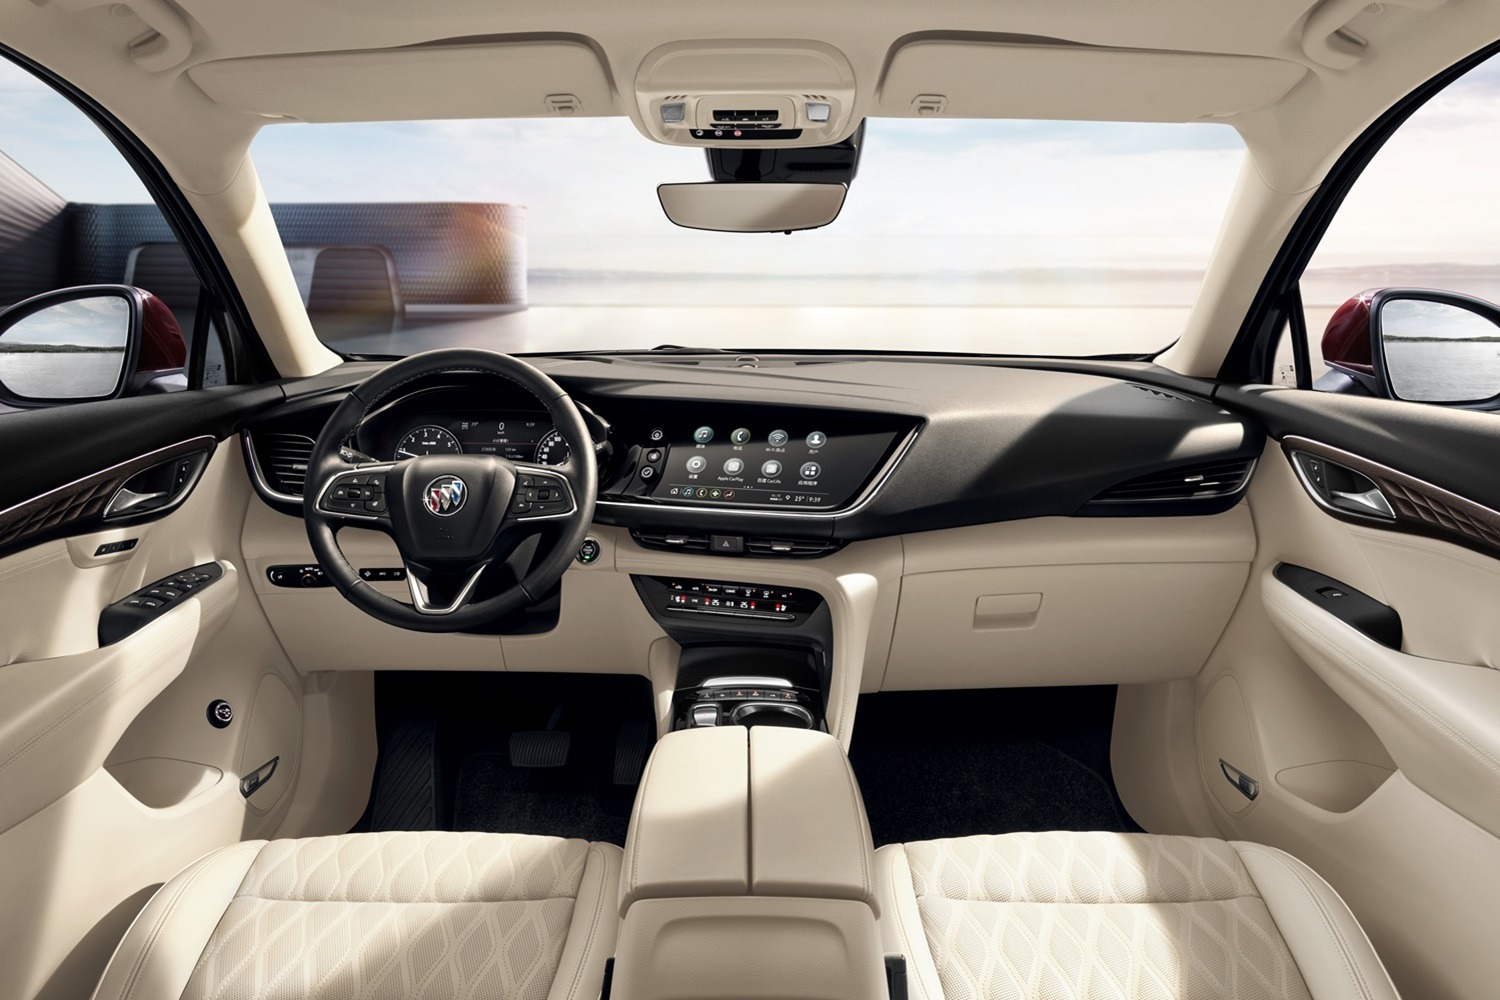 2021 Buick Envision Interior Revealed In Brand New Photos New 2021 Buick Envision Interior Colors, Inventory, Images